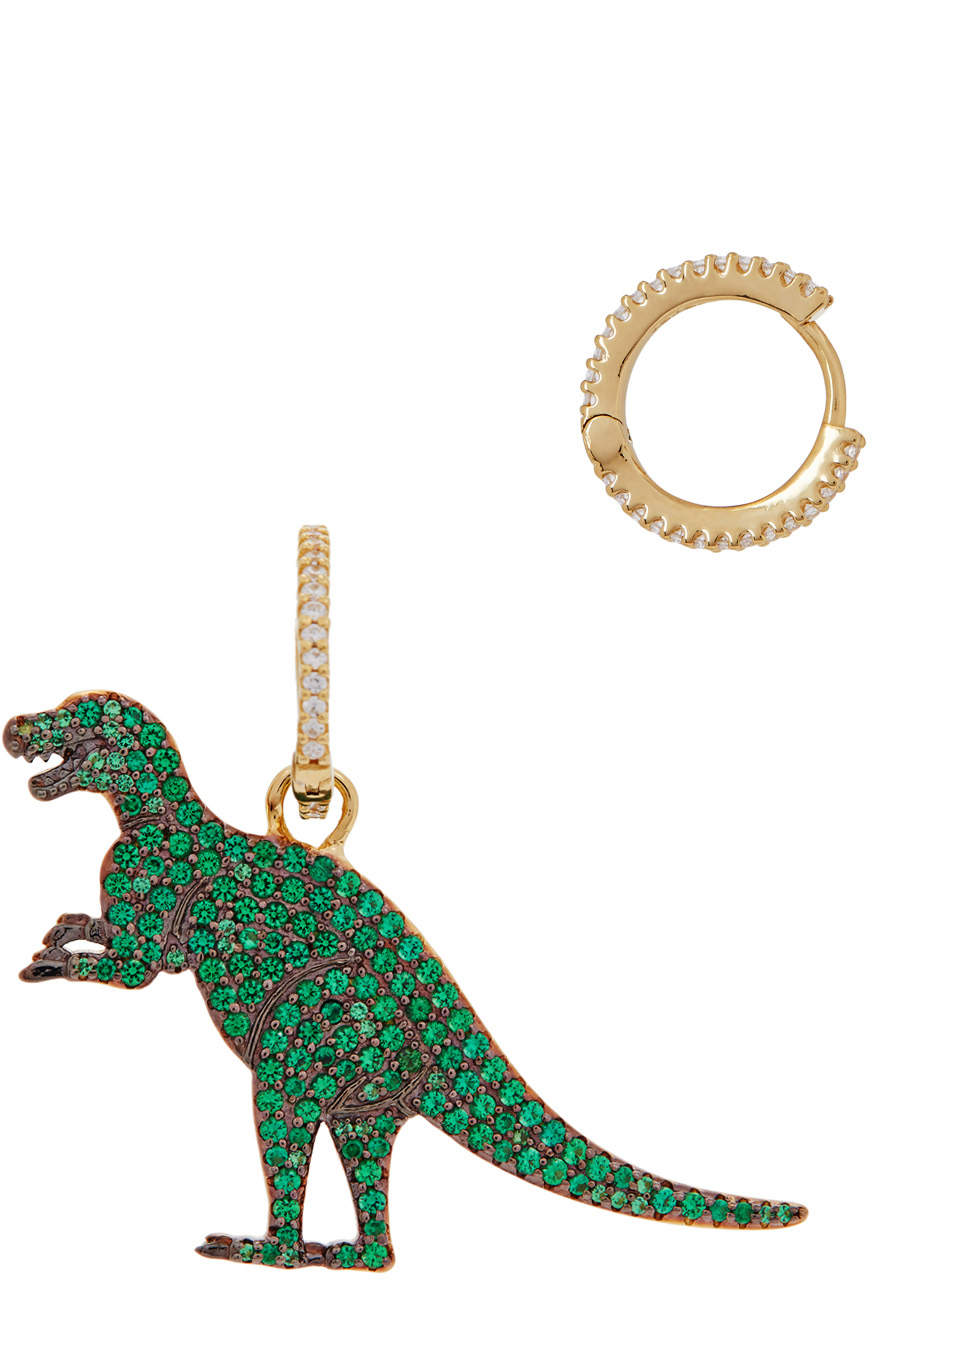 APM MONACO Rexy Dinosaur Gold Tone Hoop Earrings in Green